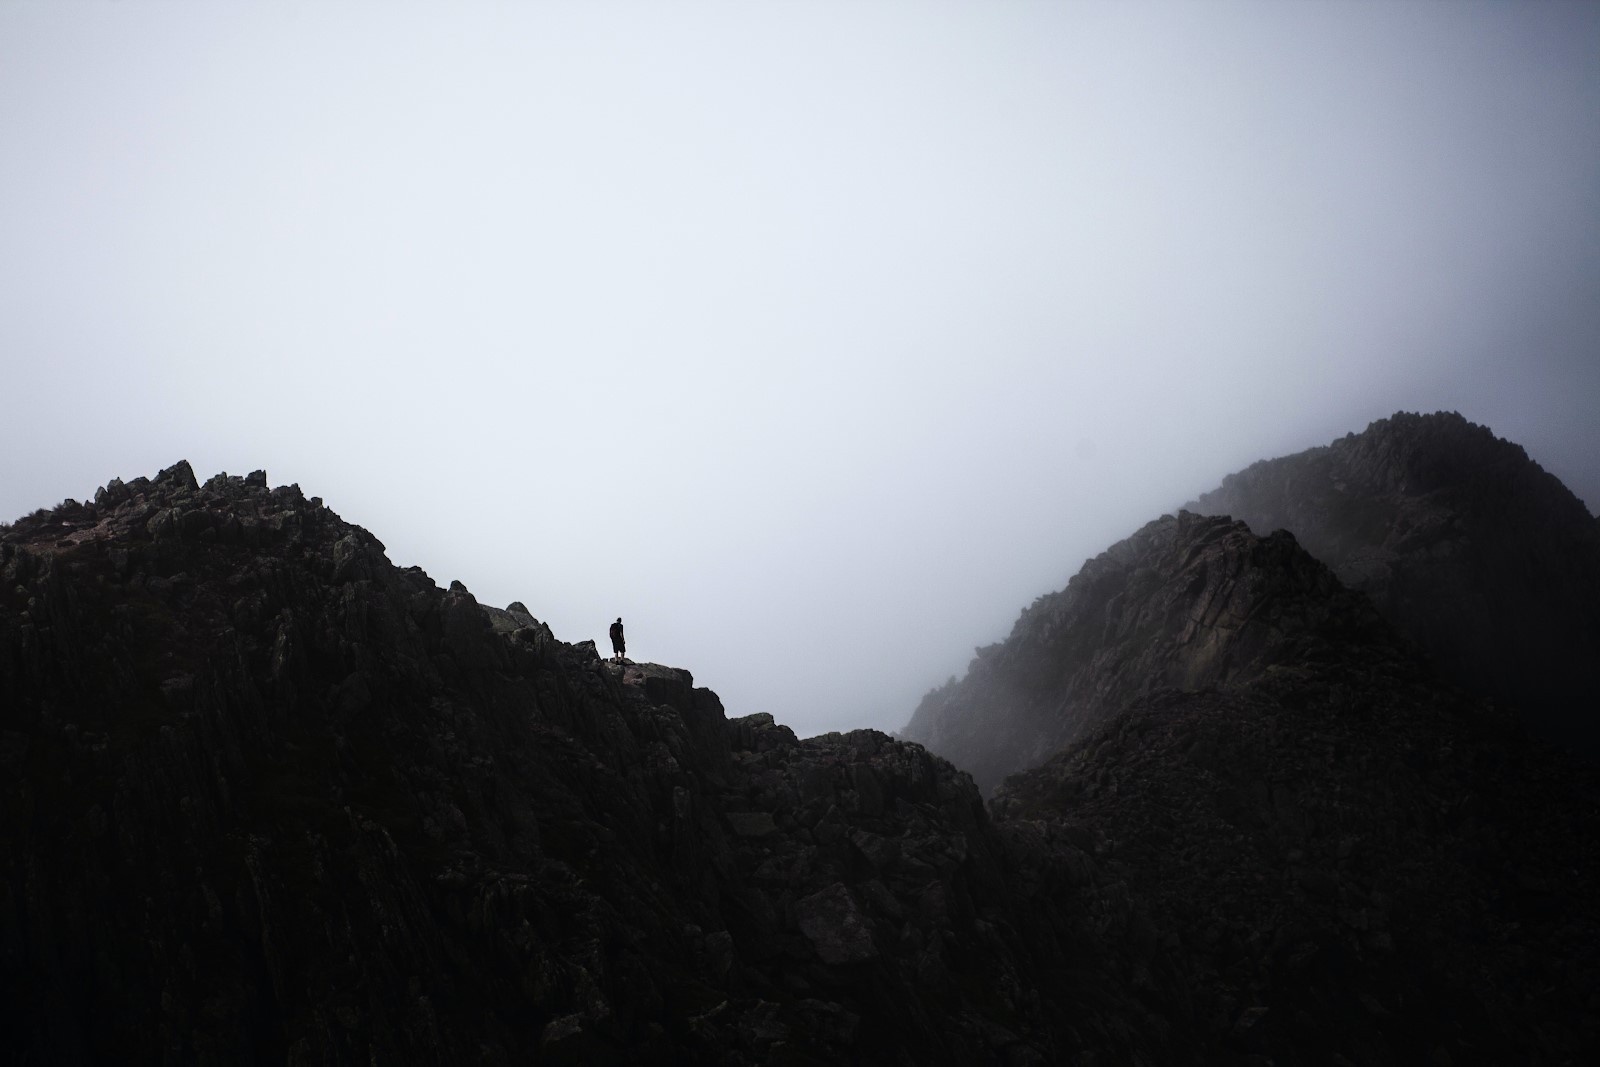 Image of Mount Katahdin in Maine with a lone figure on it silhouetted against a cloudy, misty sky.